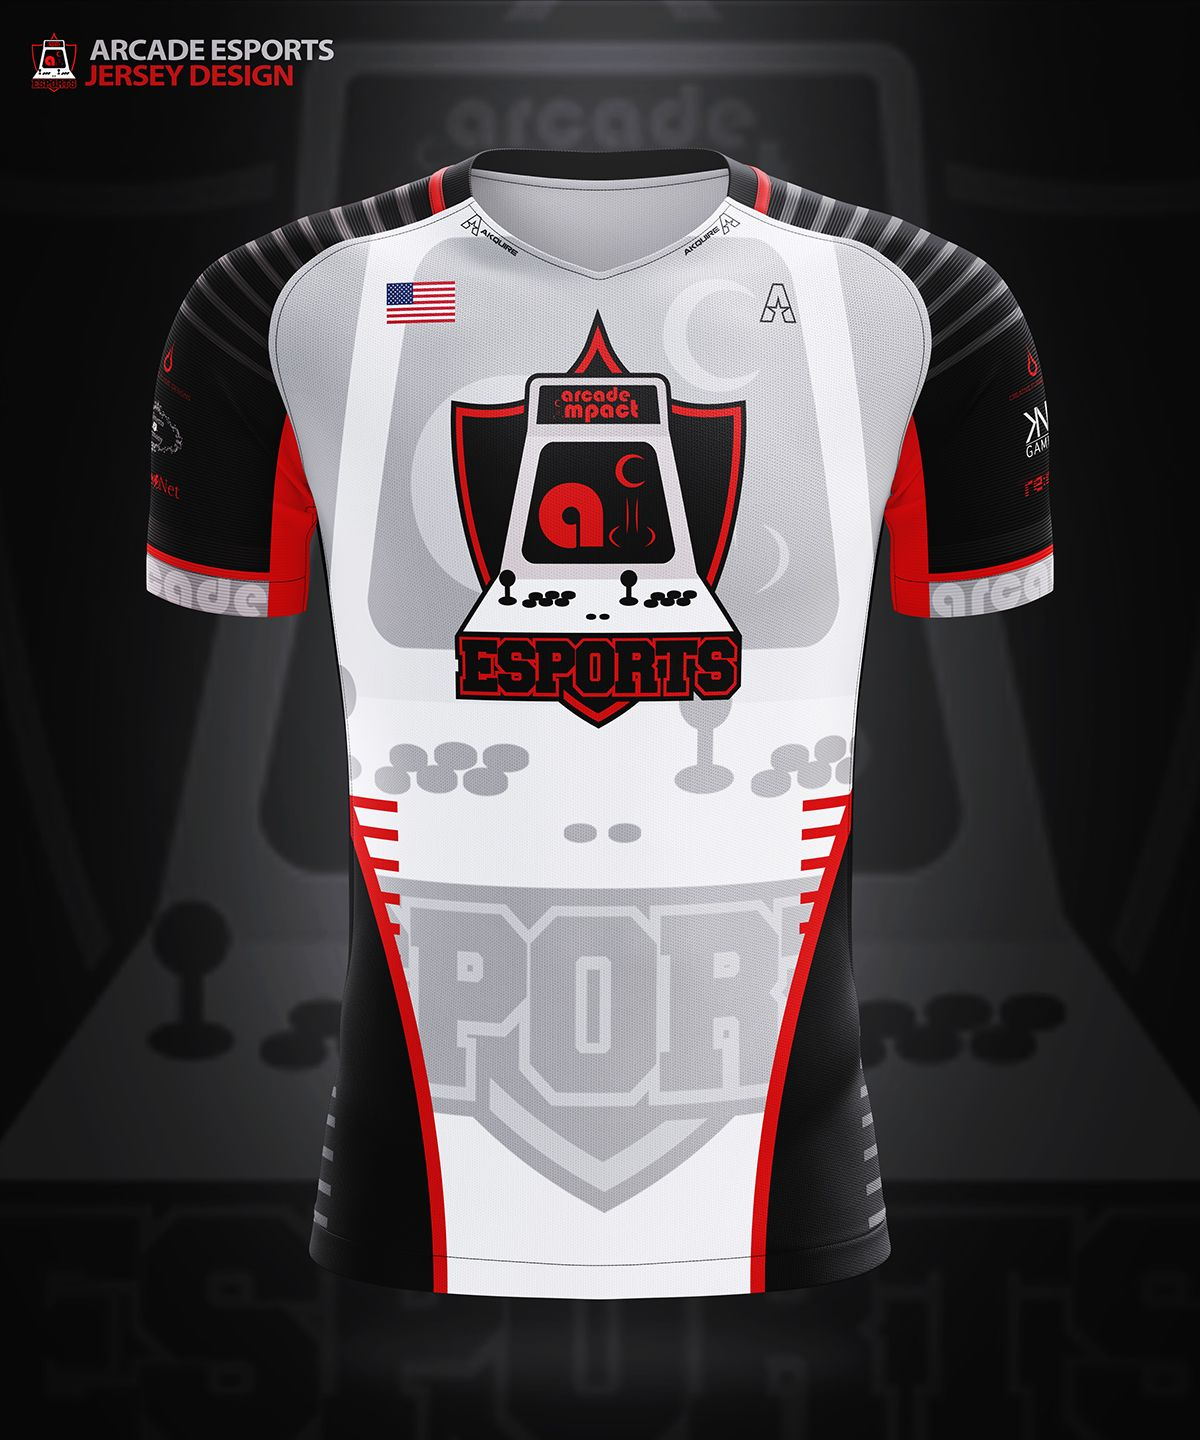 Akquire Clothing Co. Esports Team Jersey Designs on